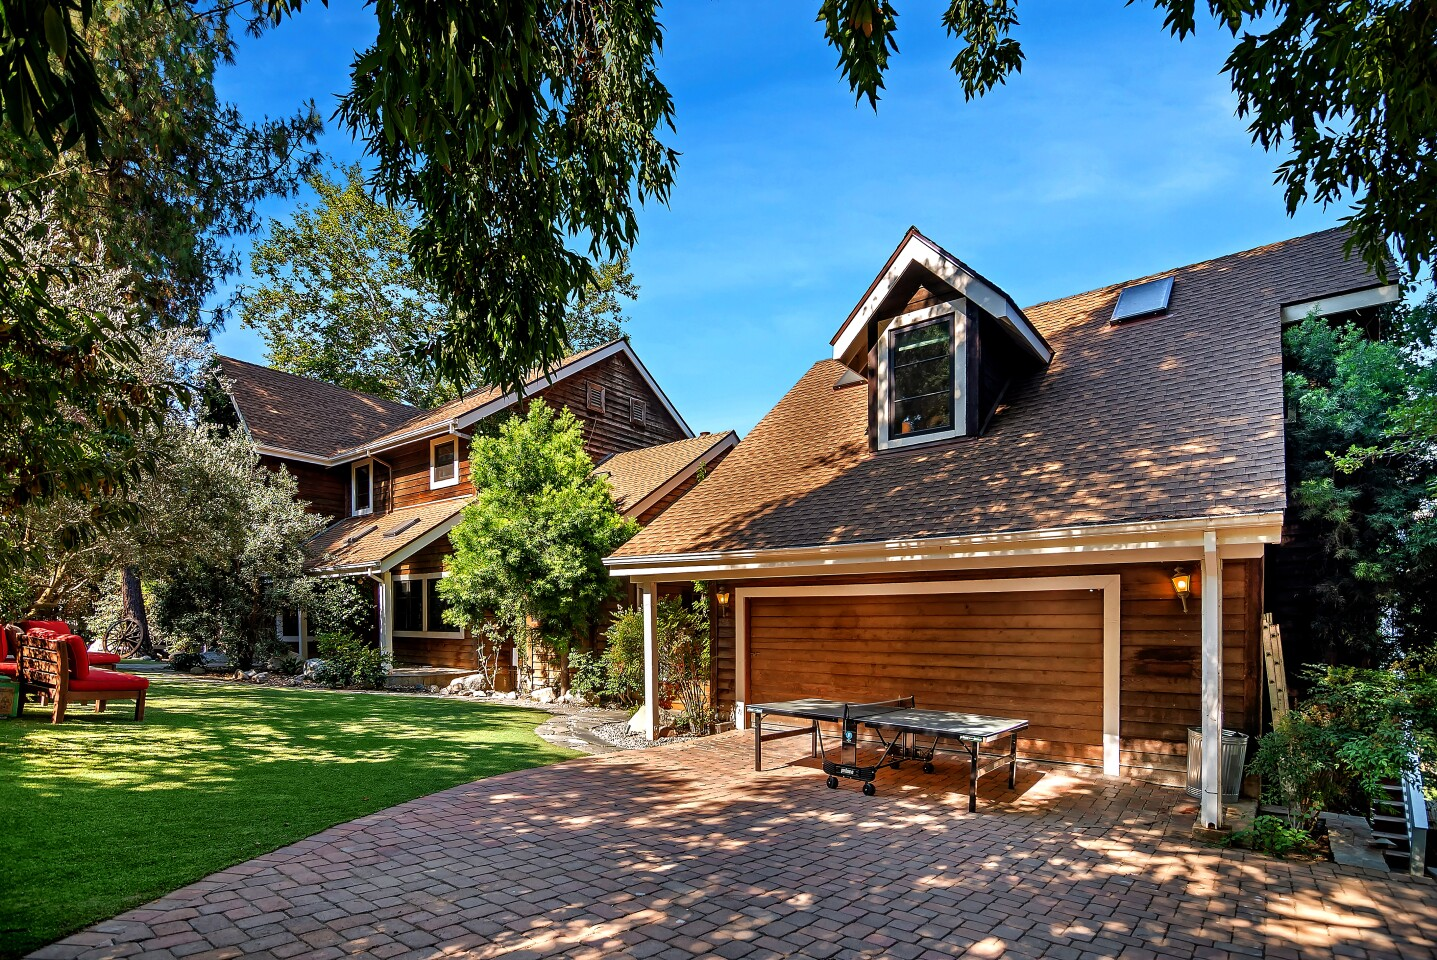 It's no beet farm, but Rainn Wilson's Agoura Hills house, listed for $1.699 million, features a rustic charm complete with some barns. The three-bedroom house has about 3,300 square feet of living space, a family room with a brick fireplace and an updated kitchen. Rustic details include an vintage stove in the living room and a wagon wheel in the front yard.